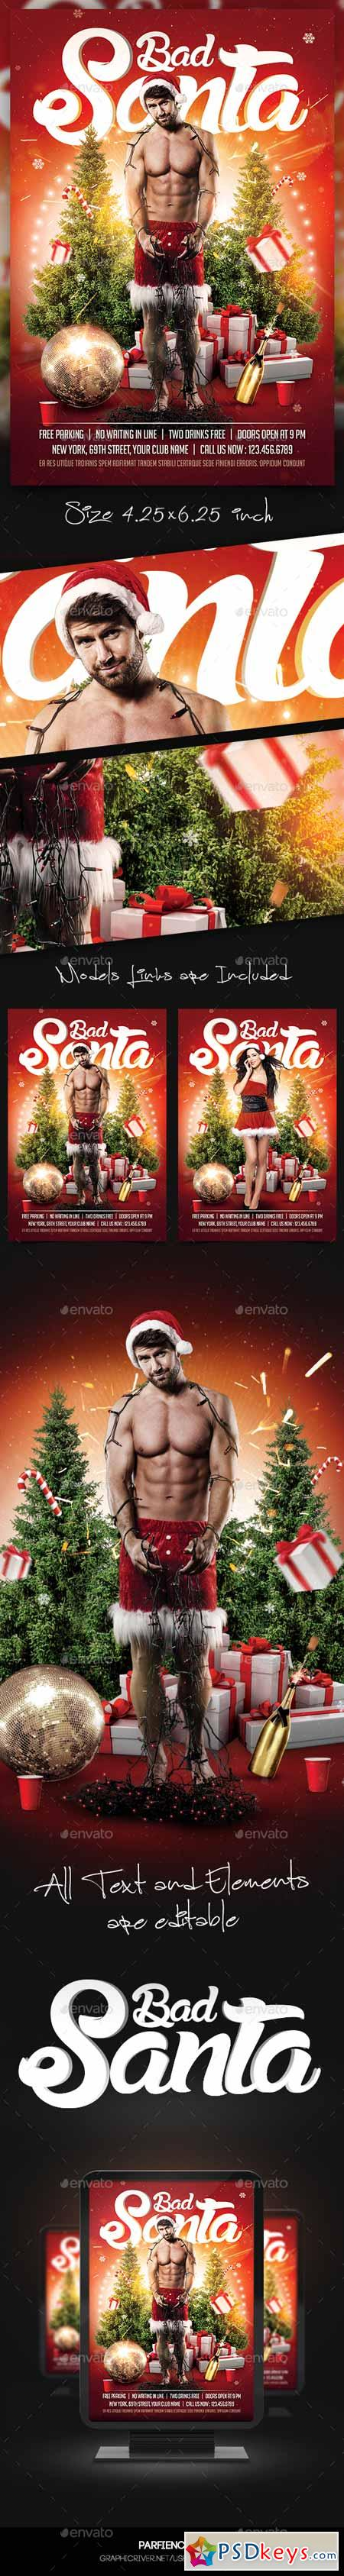 Bad Santa Flyer Template 13489321